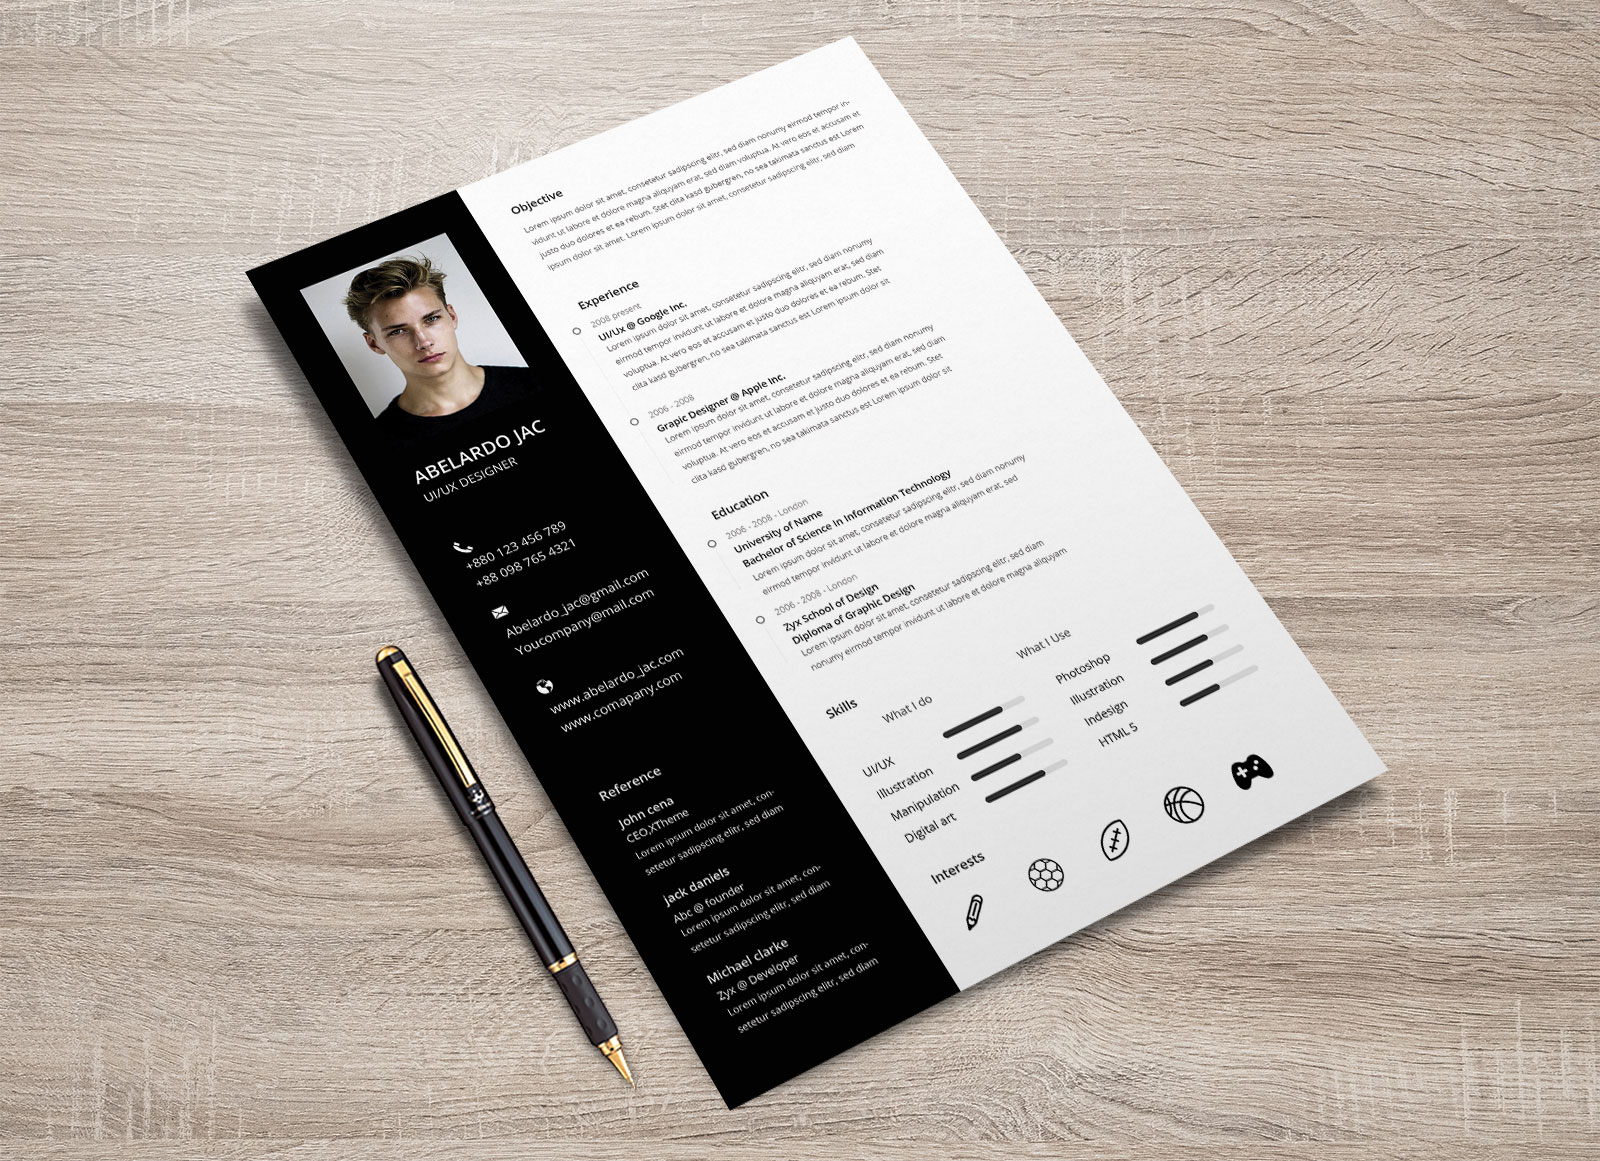 free psd resume cover letter template design for web designers